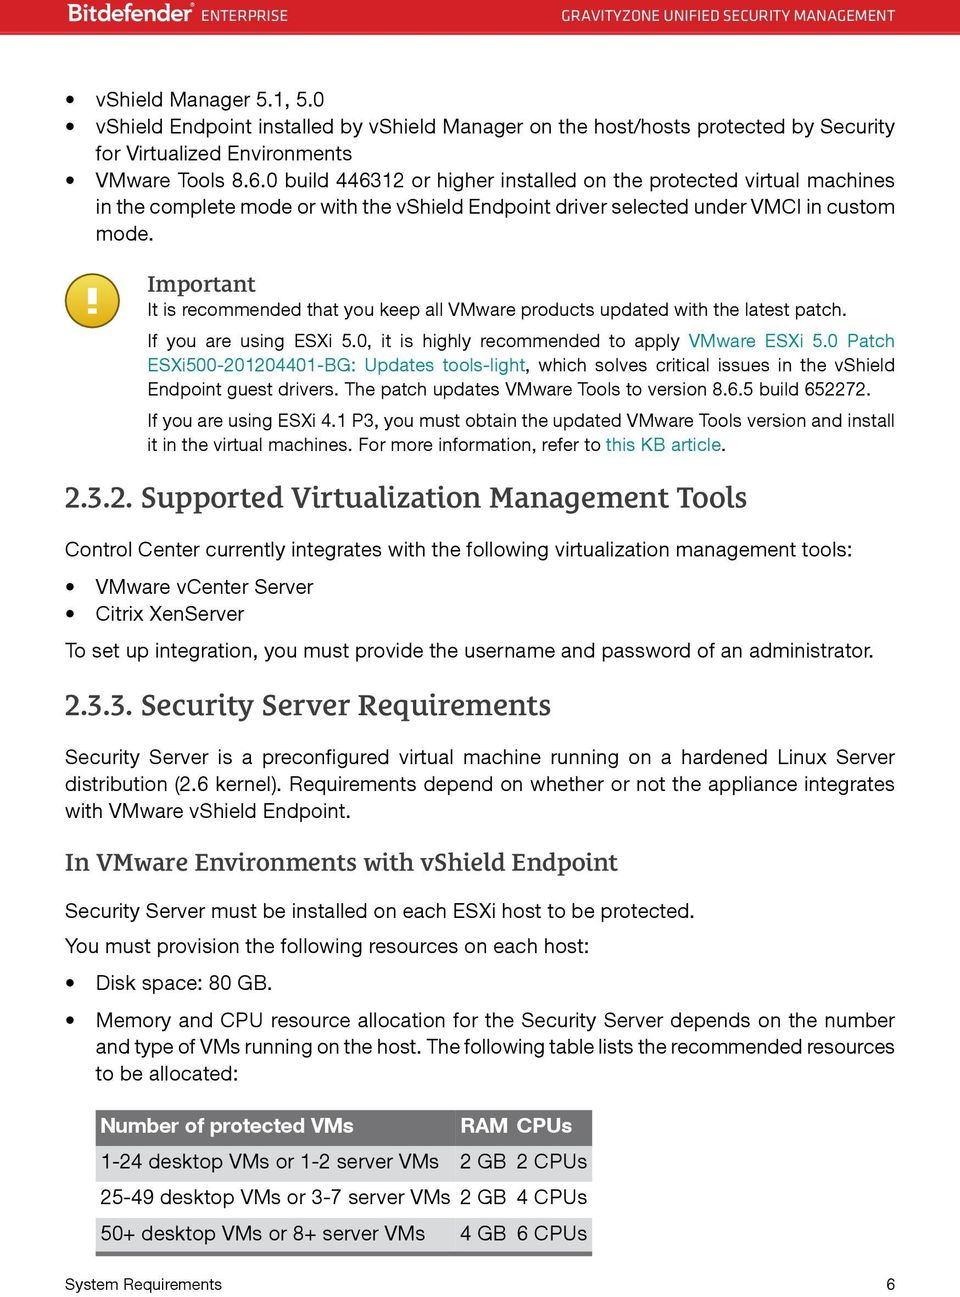 Important It is recommended that you keep all VMware products updated with the latest patch. If you are using ESXi 5.0, it is highly recommended to apply VMware ESXi 5.